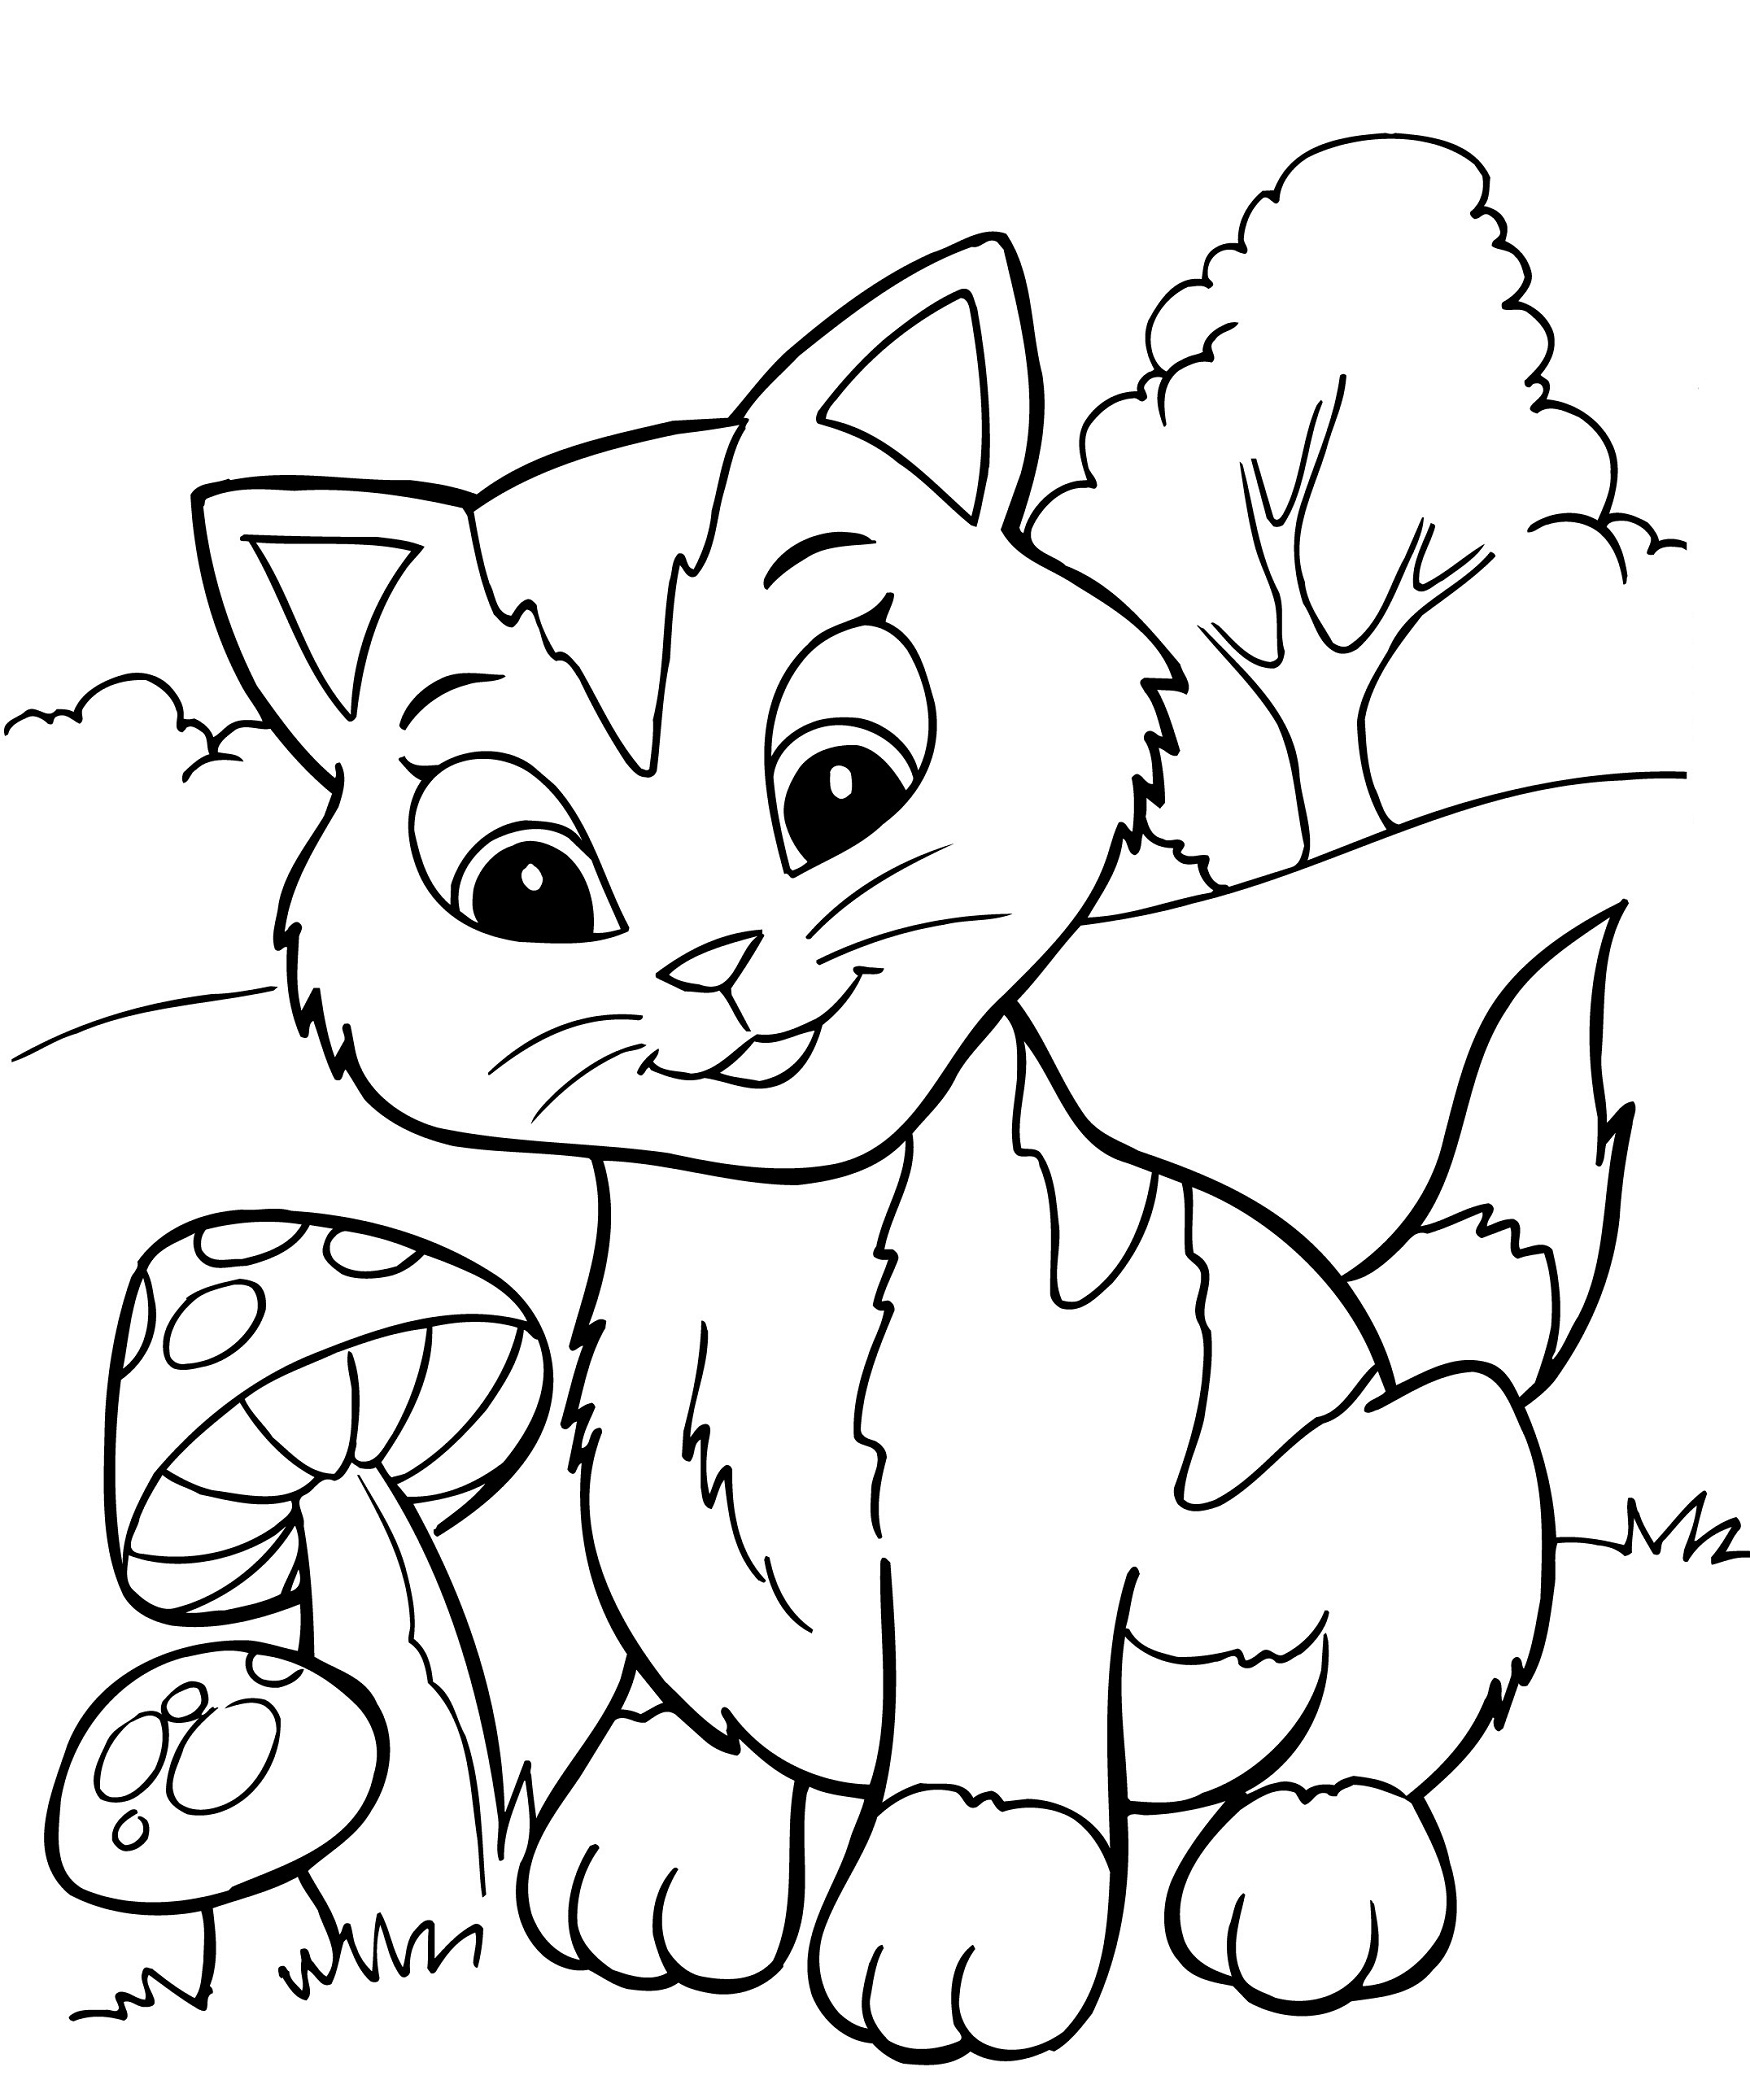 photo relating to Printable Kitten Coloring Pages known as Cost-free Printable Kitten Coloring Webpages For Youngsters - Simplest